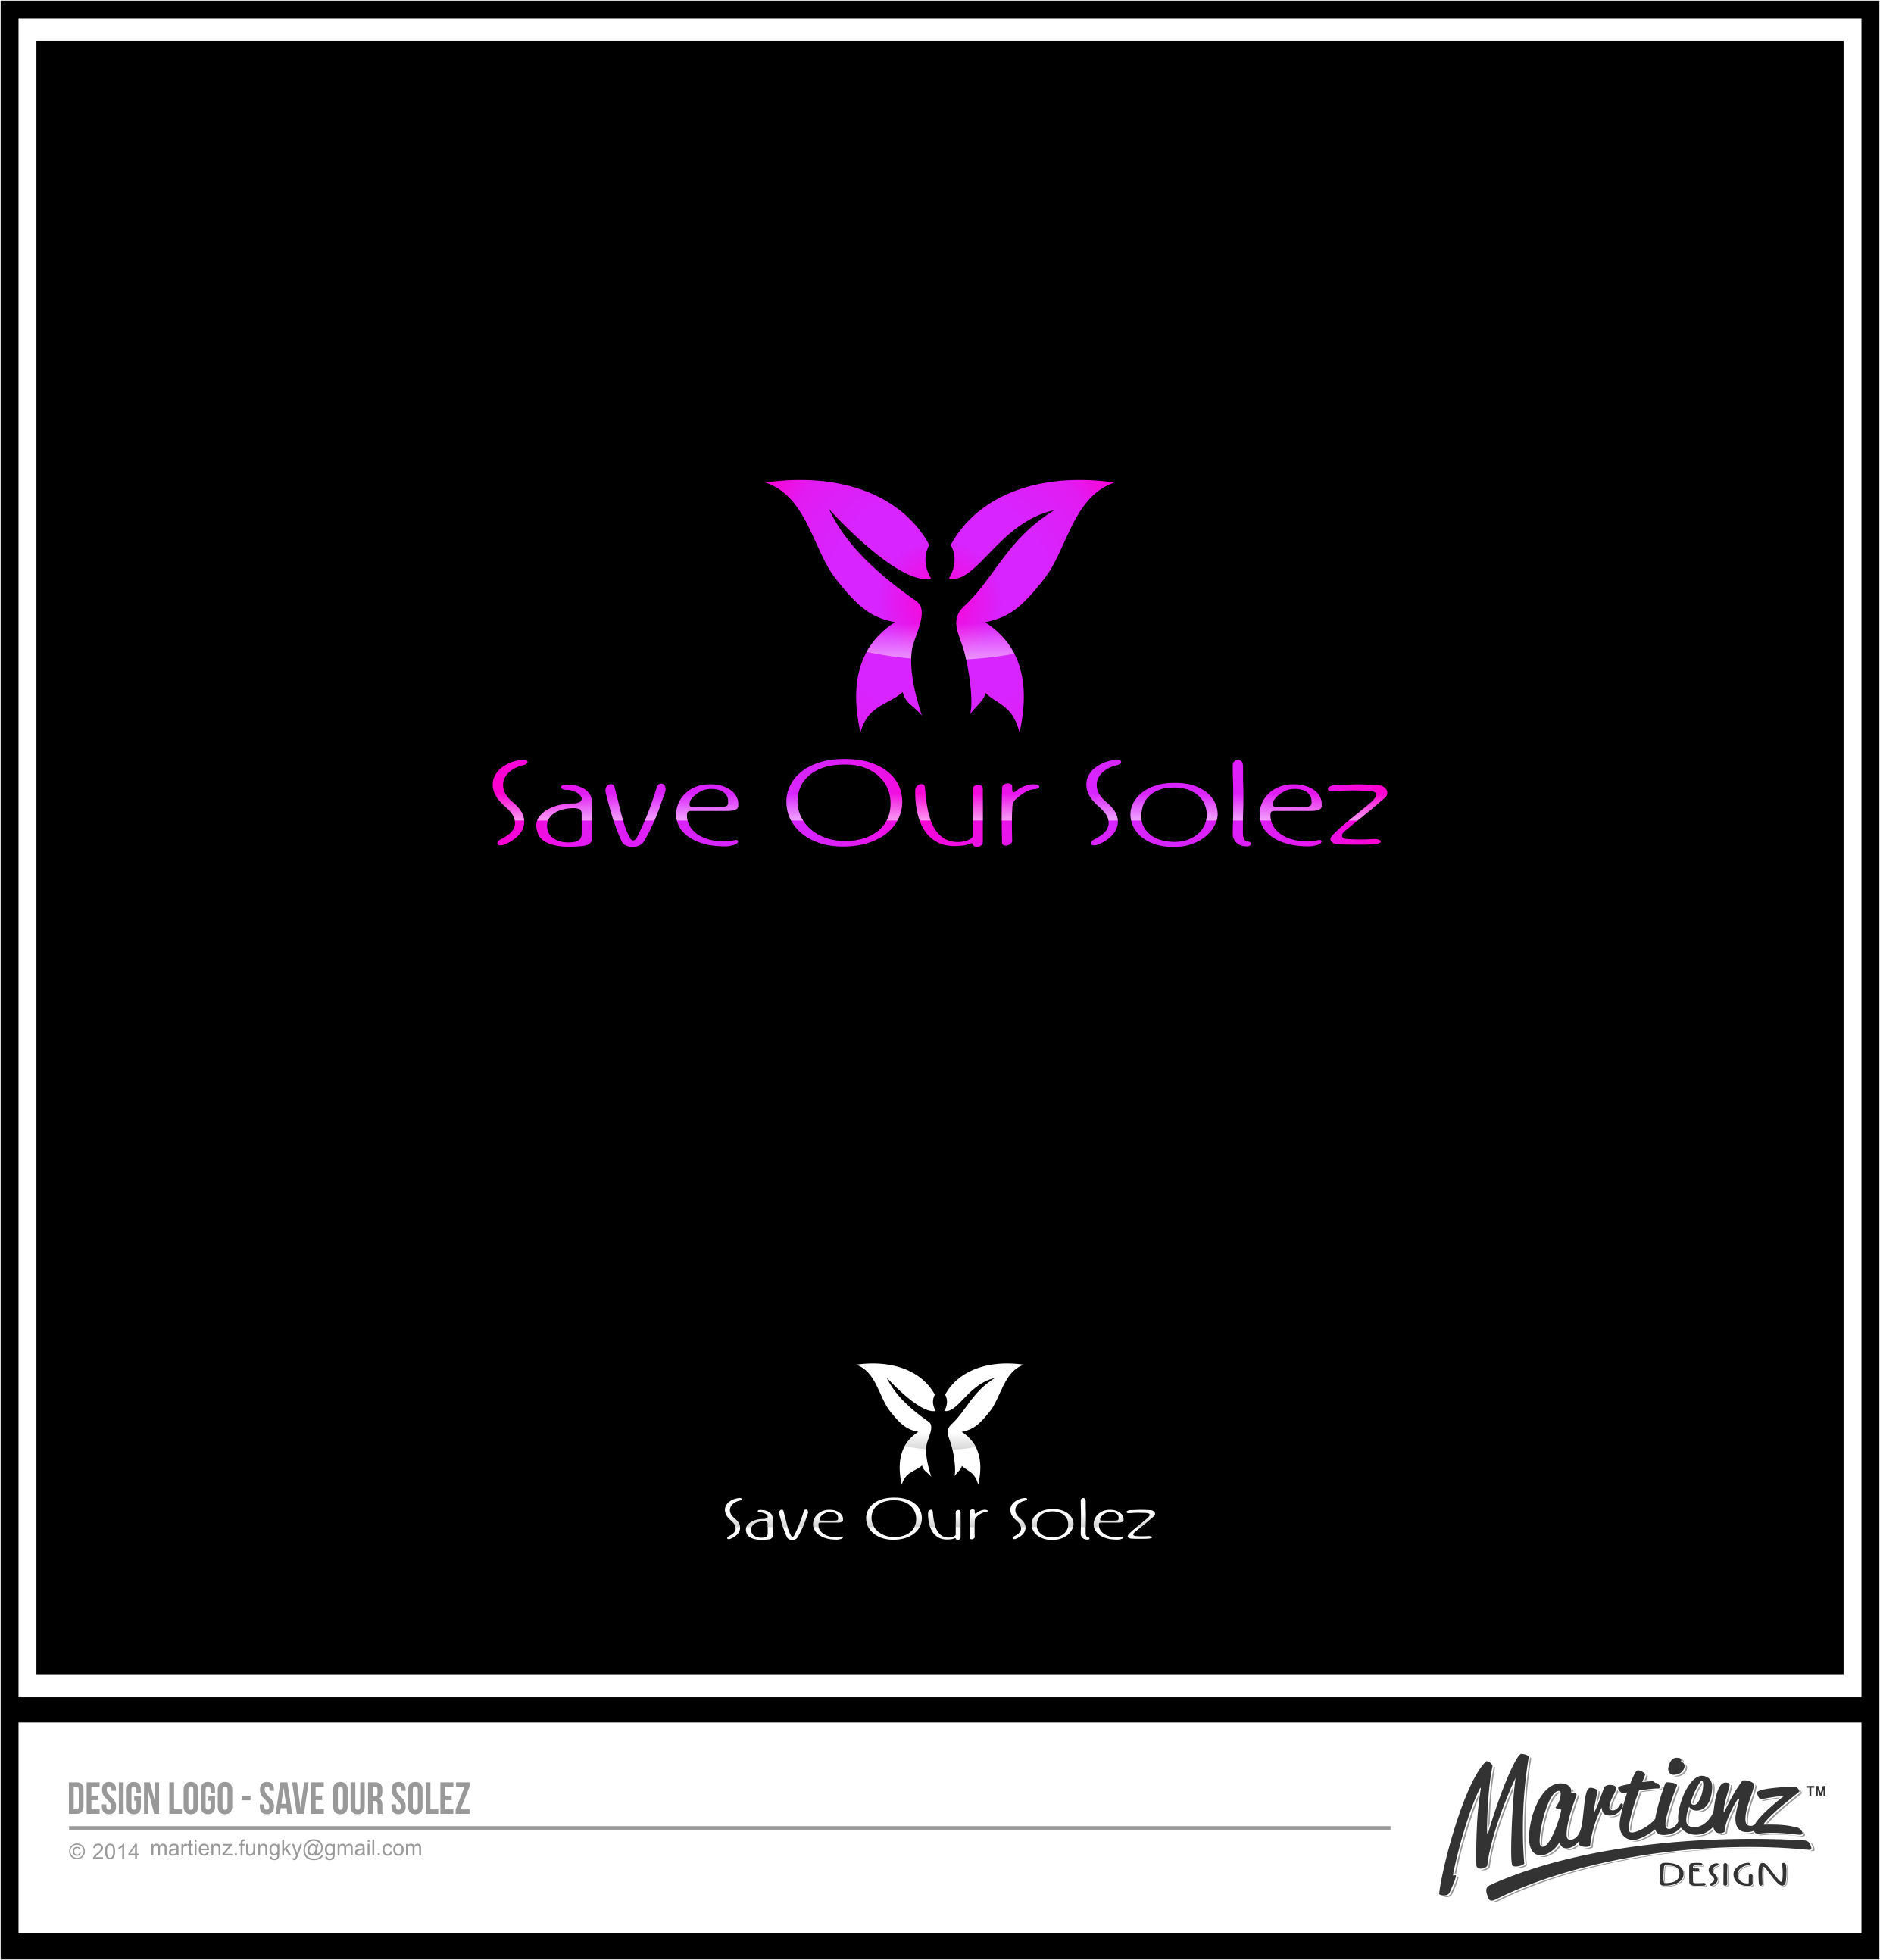 Logo Design by SHENDI MARTIN M - Entry No. 68 in the Logo Design Contest Captivating Logo Design for Save Our Solez.